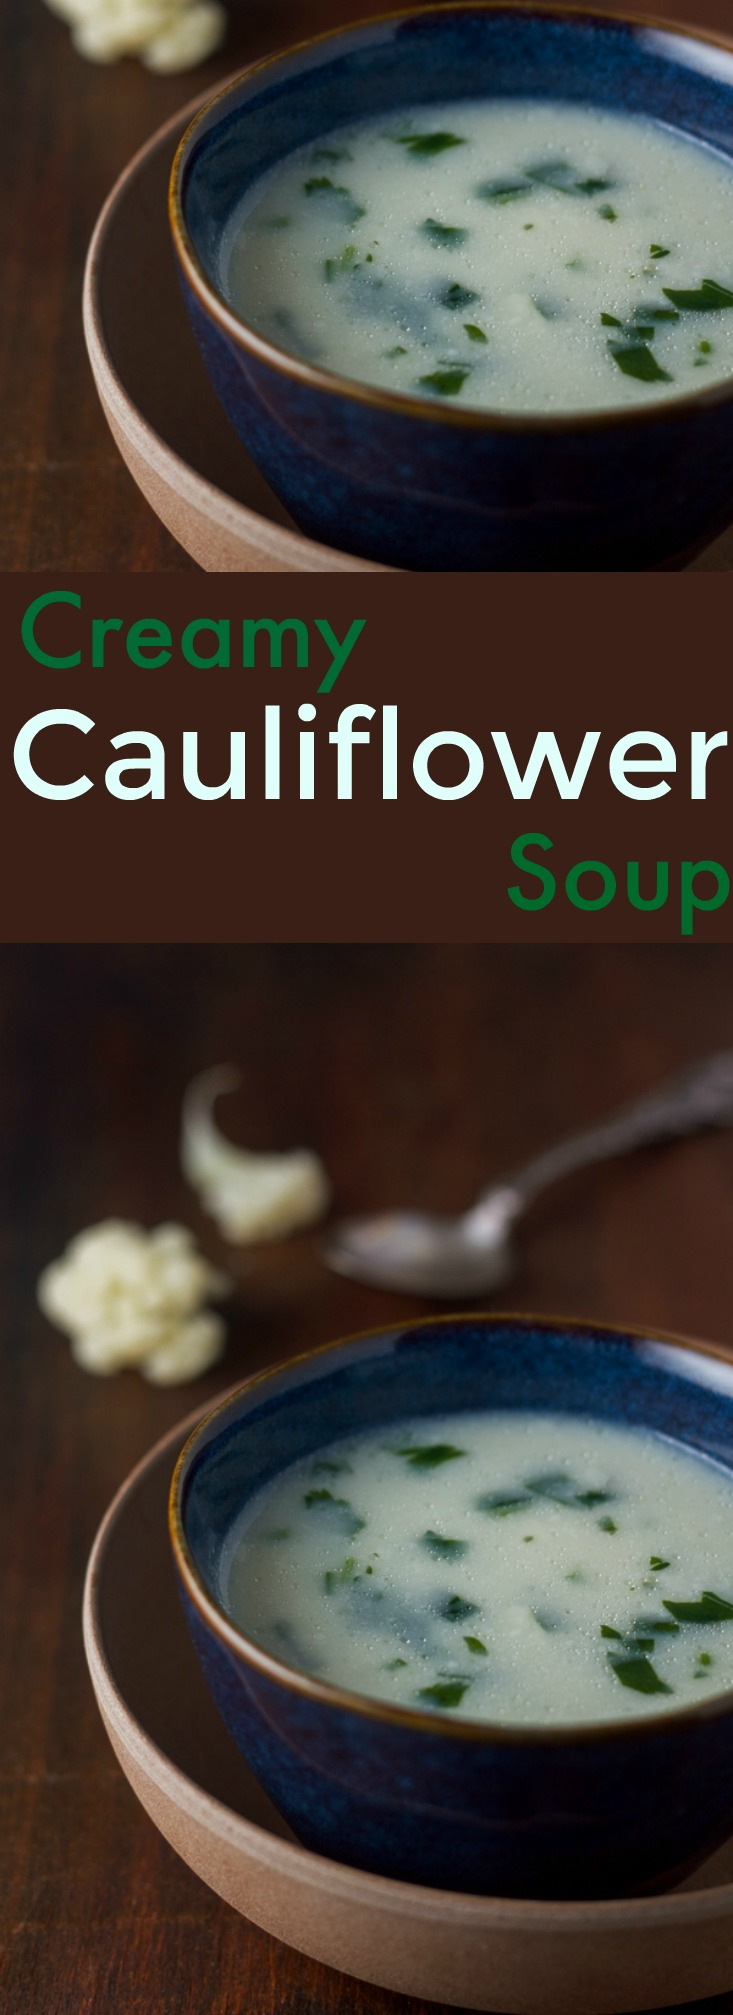 This one is an easy one: creamy cauliflower soup. Exactly what it sounds like. And it takes thirty-ish minutes or so from start to finish.